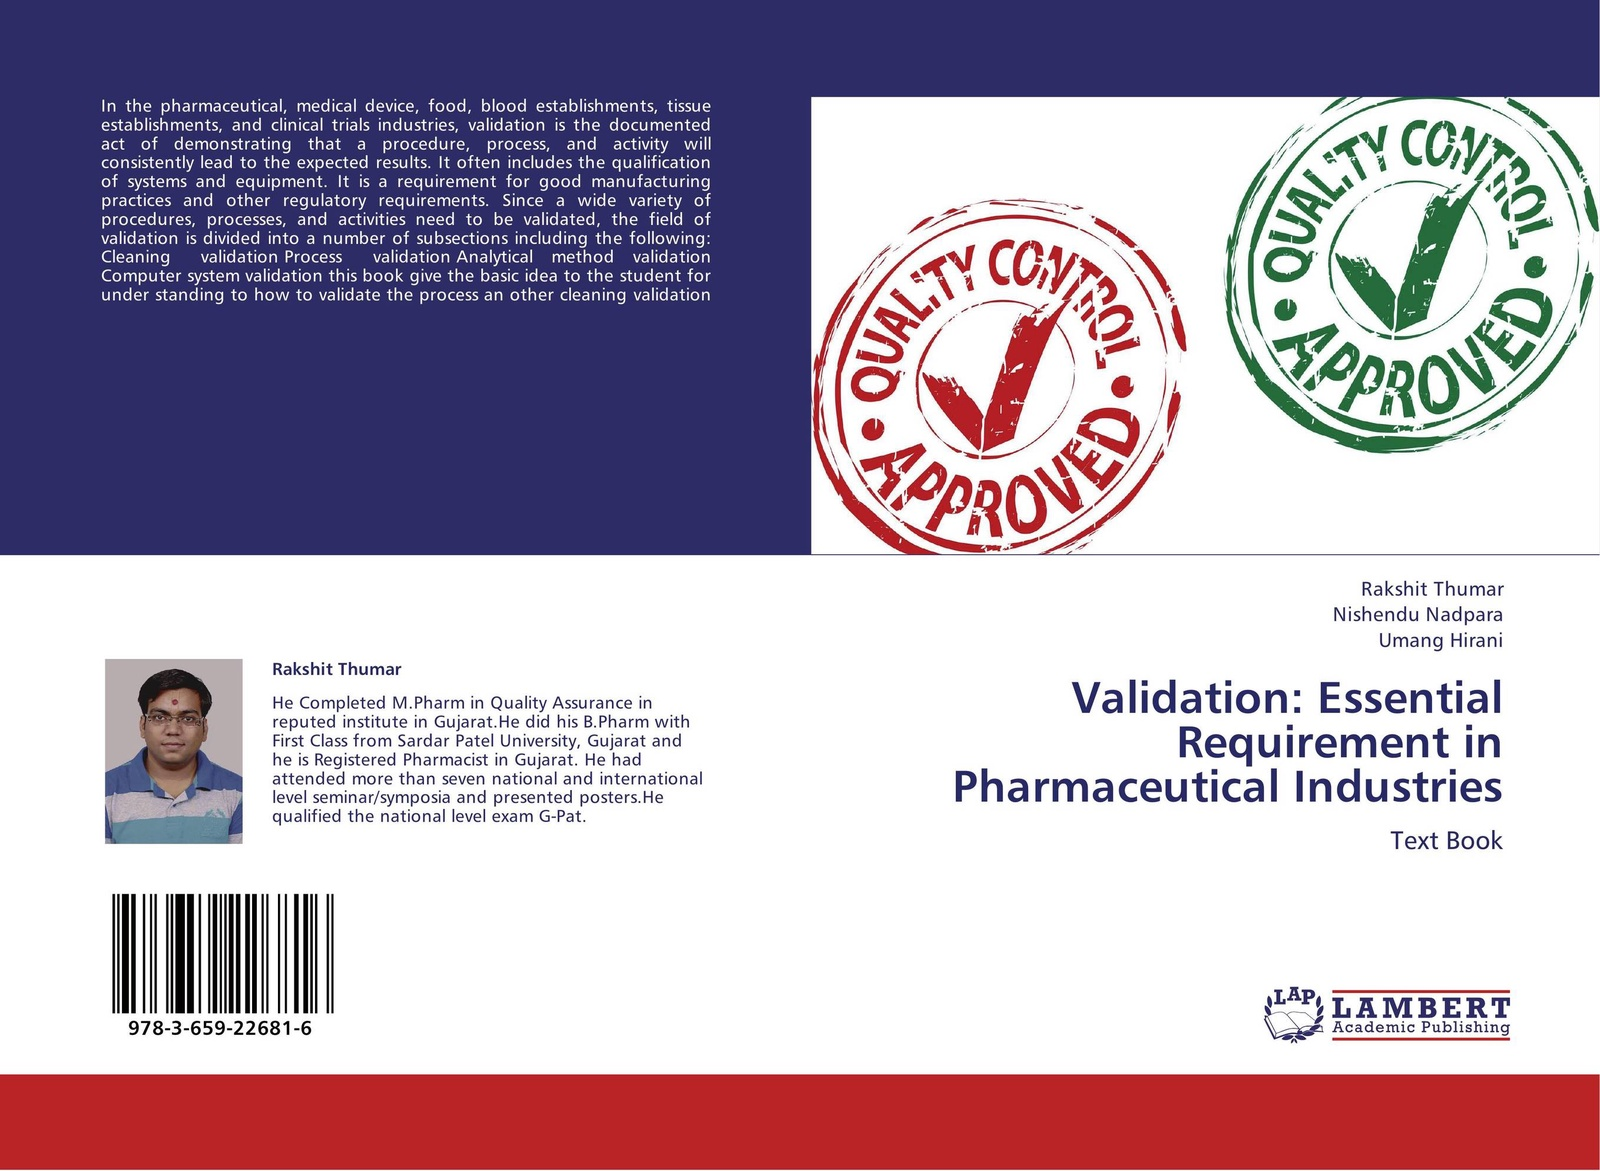 купить Rakshit Thumar,Nishendu Nadpara and Umang Hirani Validation: Essential Requirement in Pharmaceutical Industries по цене 3212 рублей